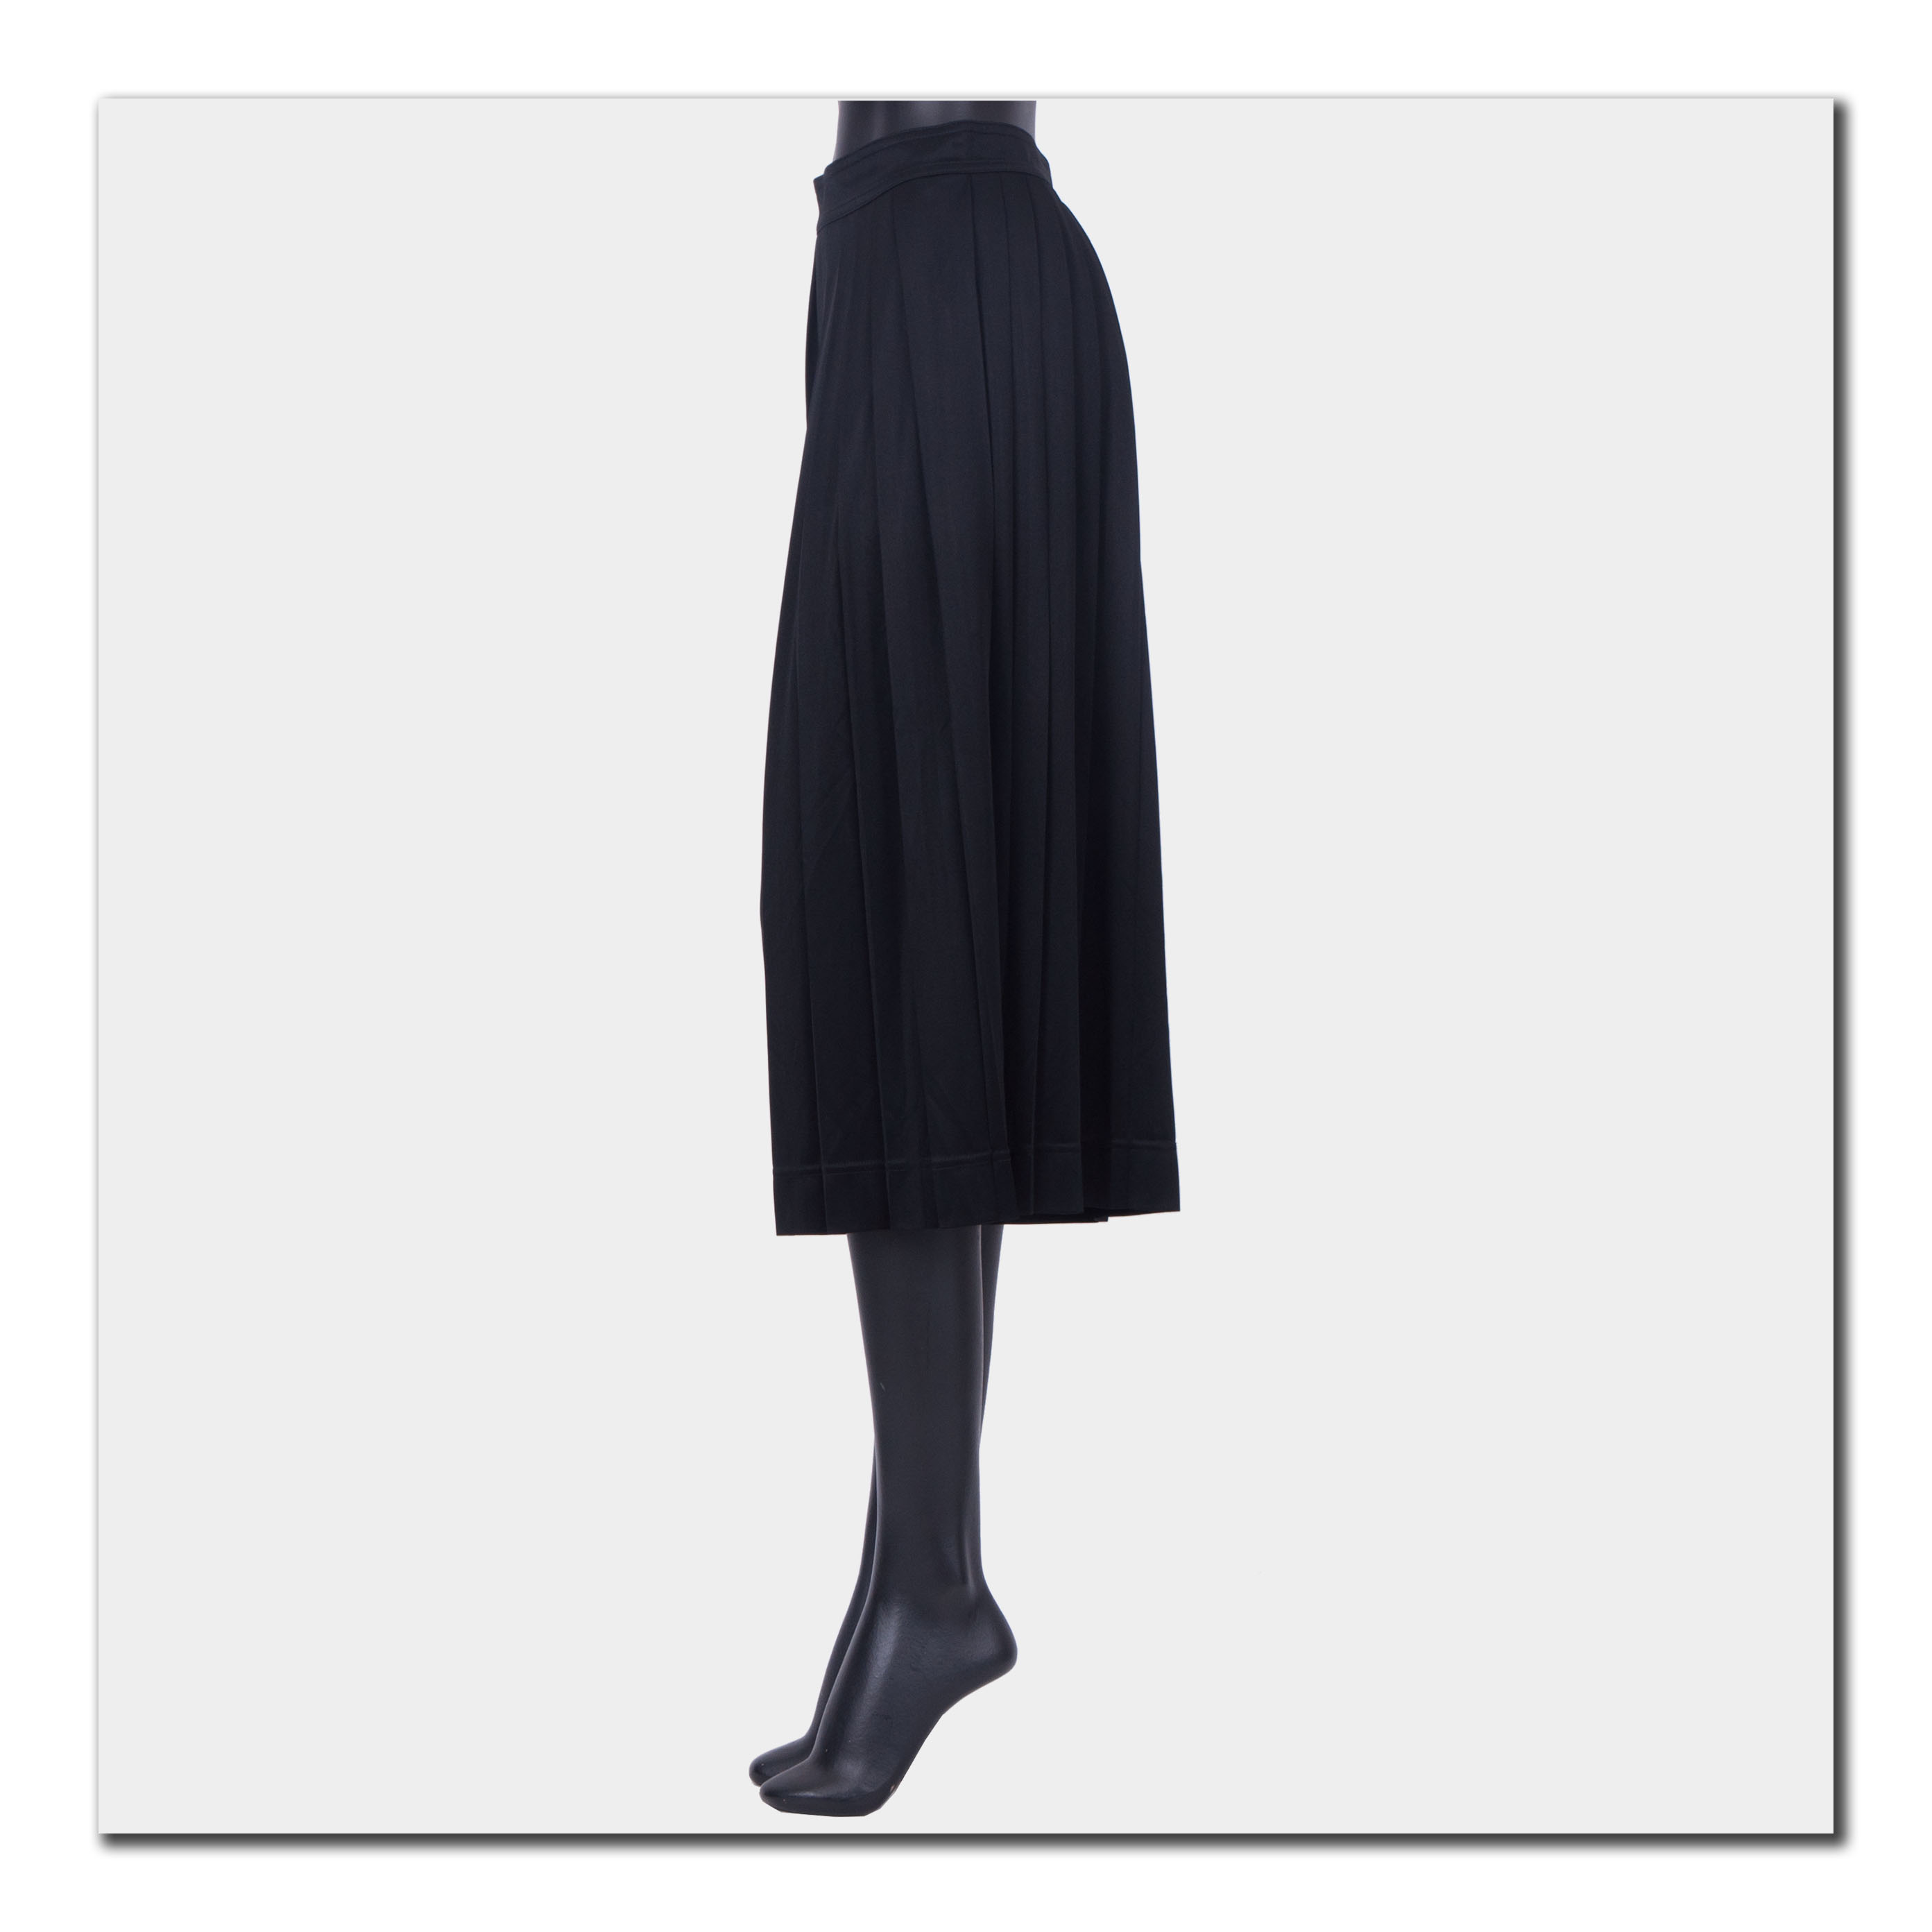 ae53160ef2da Details about CELINE by Phoebe Philo 1440$ New Pleated Skirt Pants In Fluid  Black Jersey